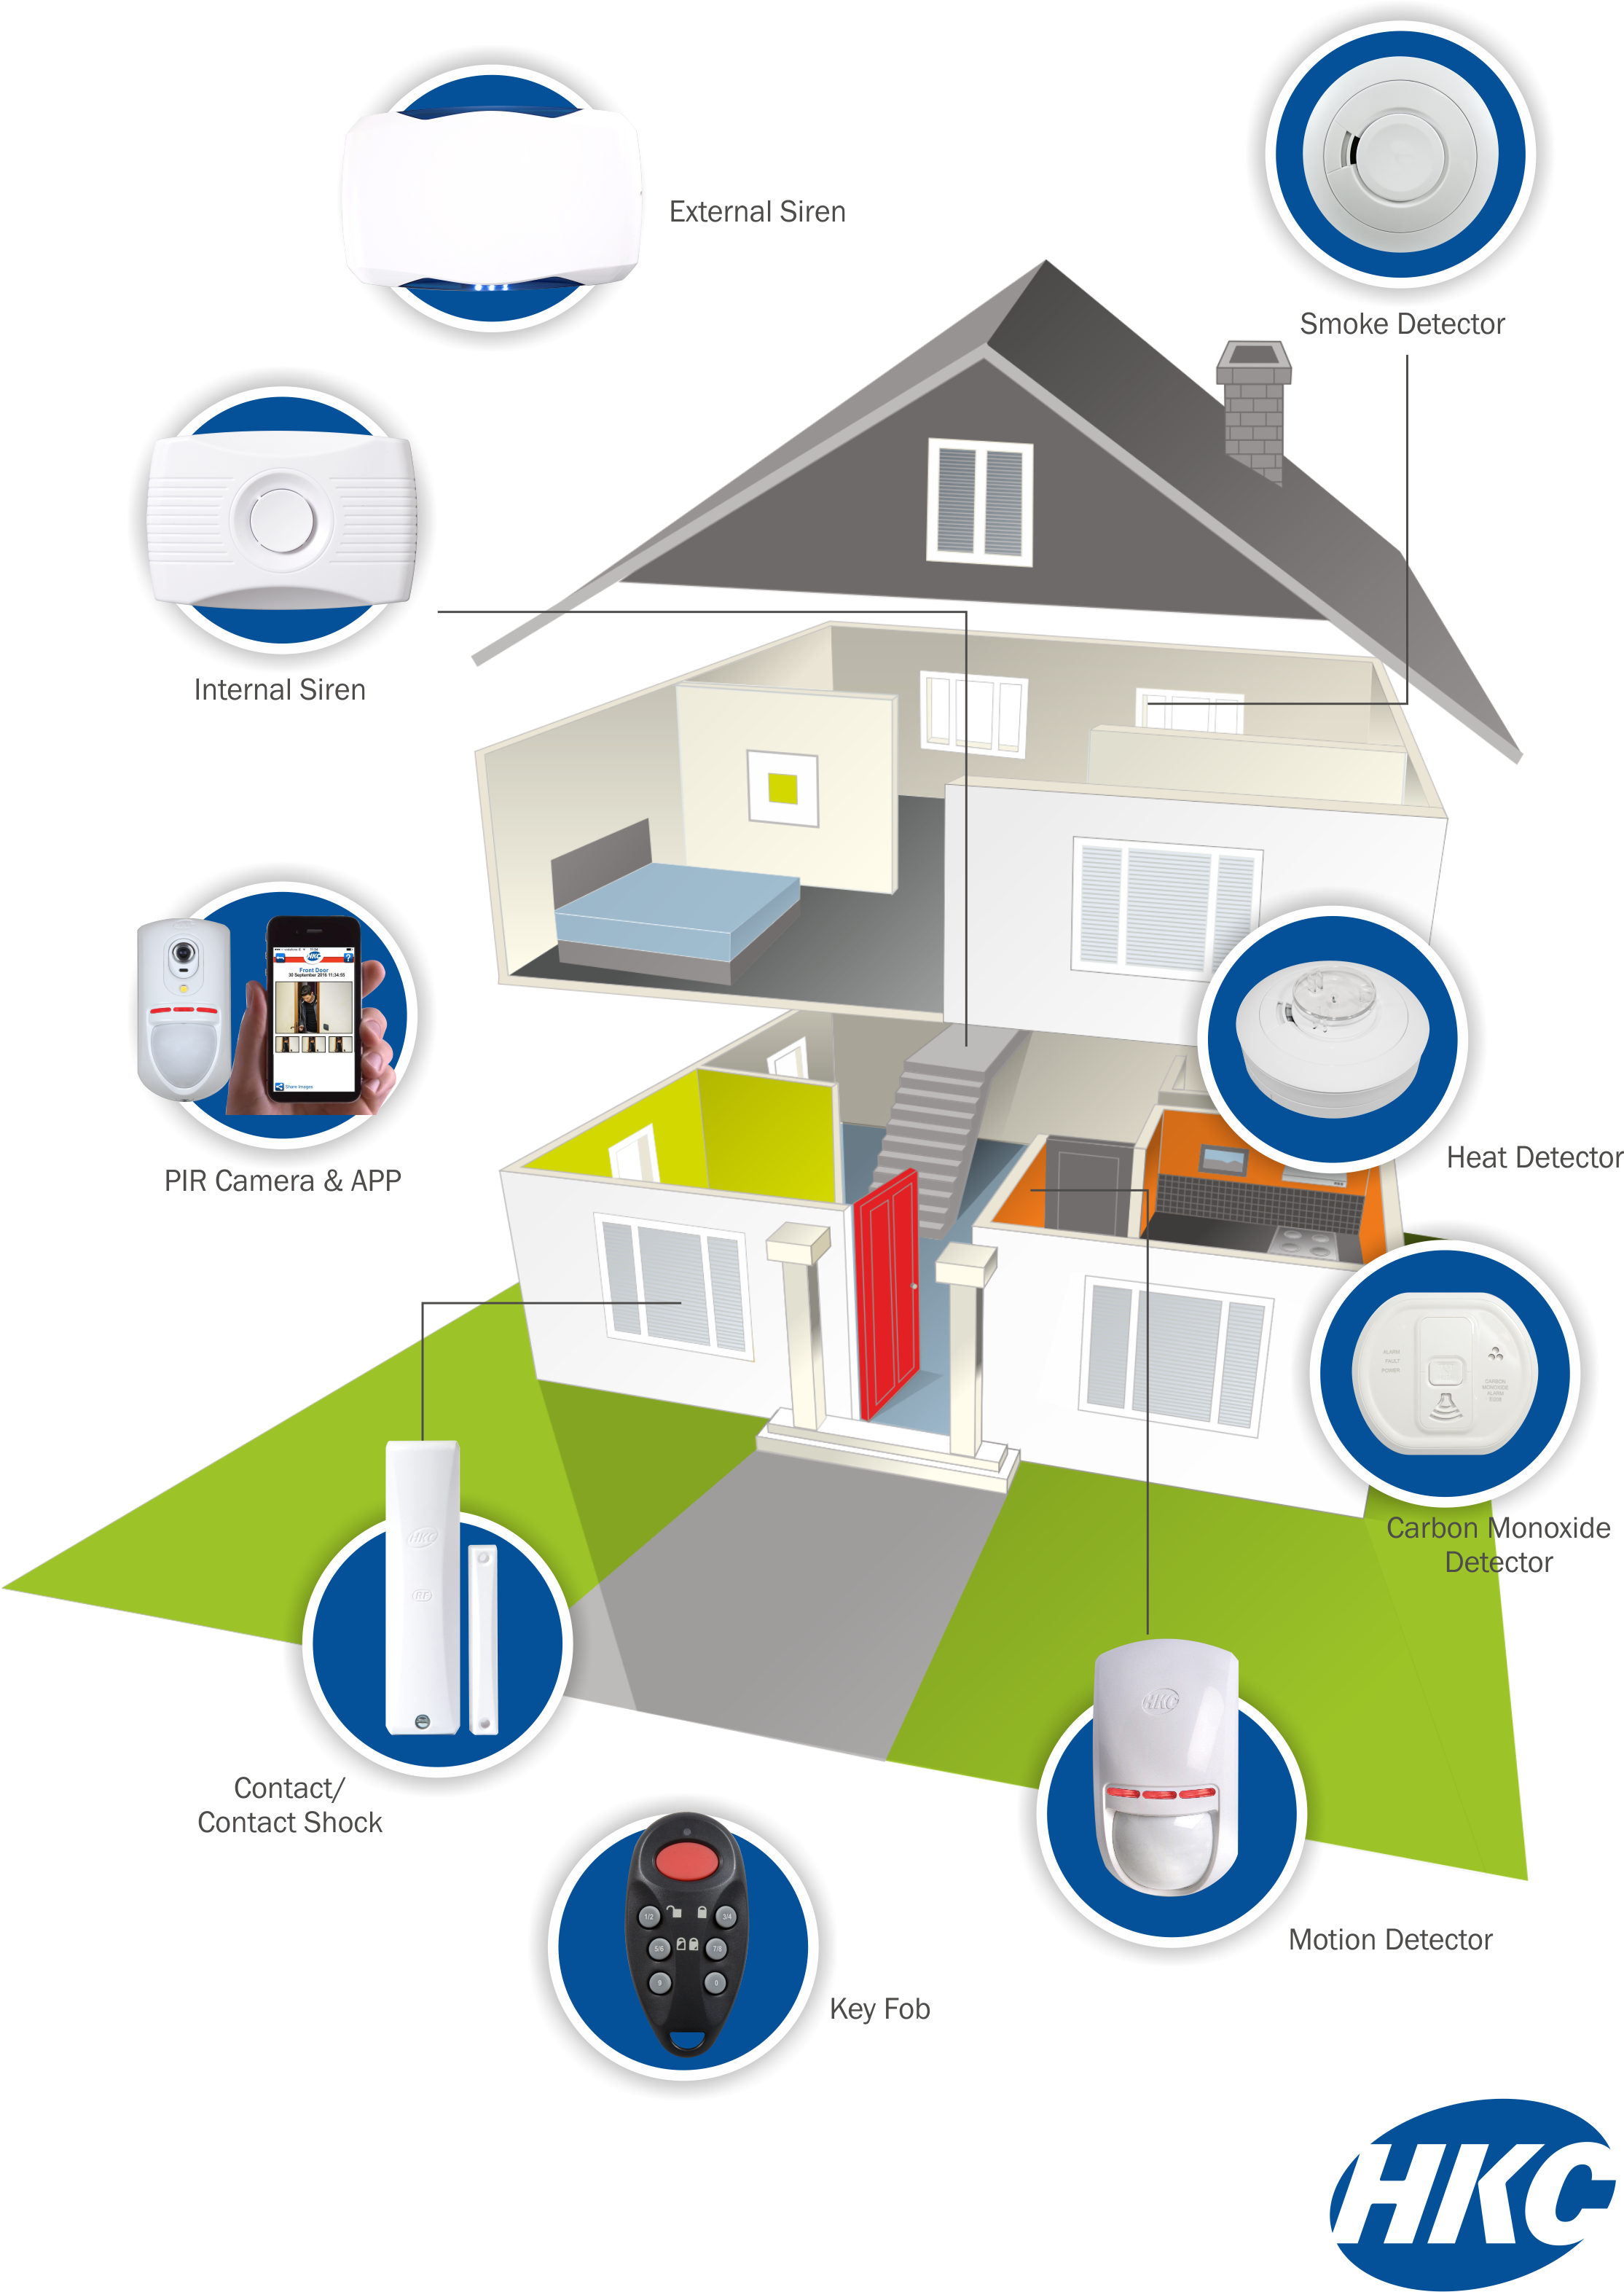 House Intruder Alarms Electronic Security Systems Hall Contacts Wiring Series Alarm System